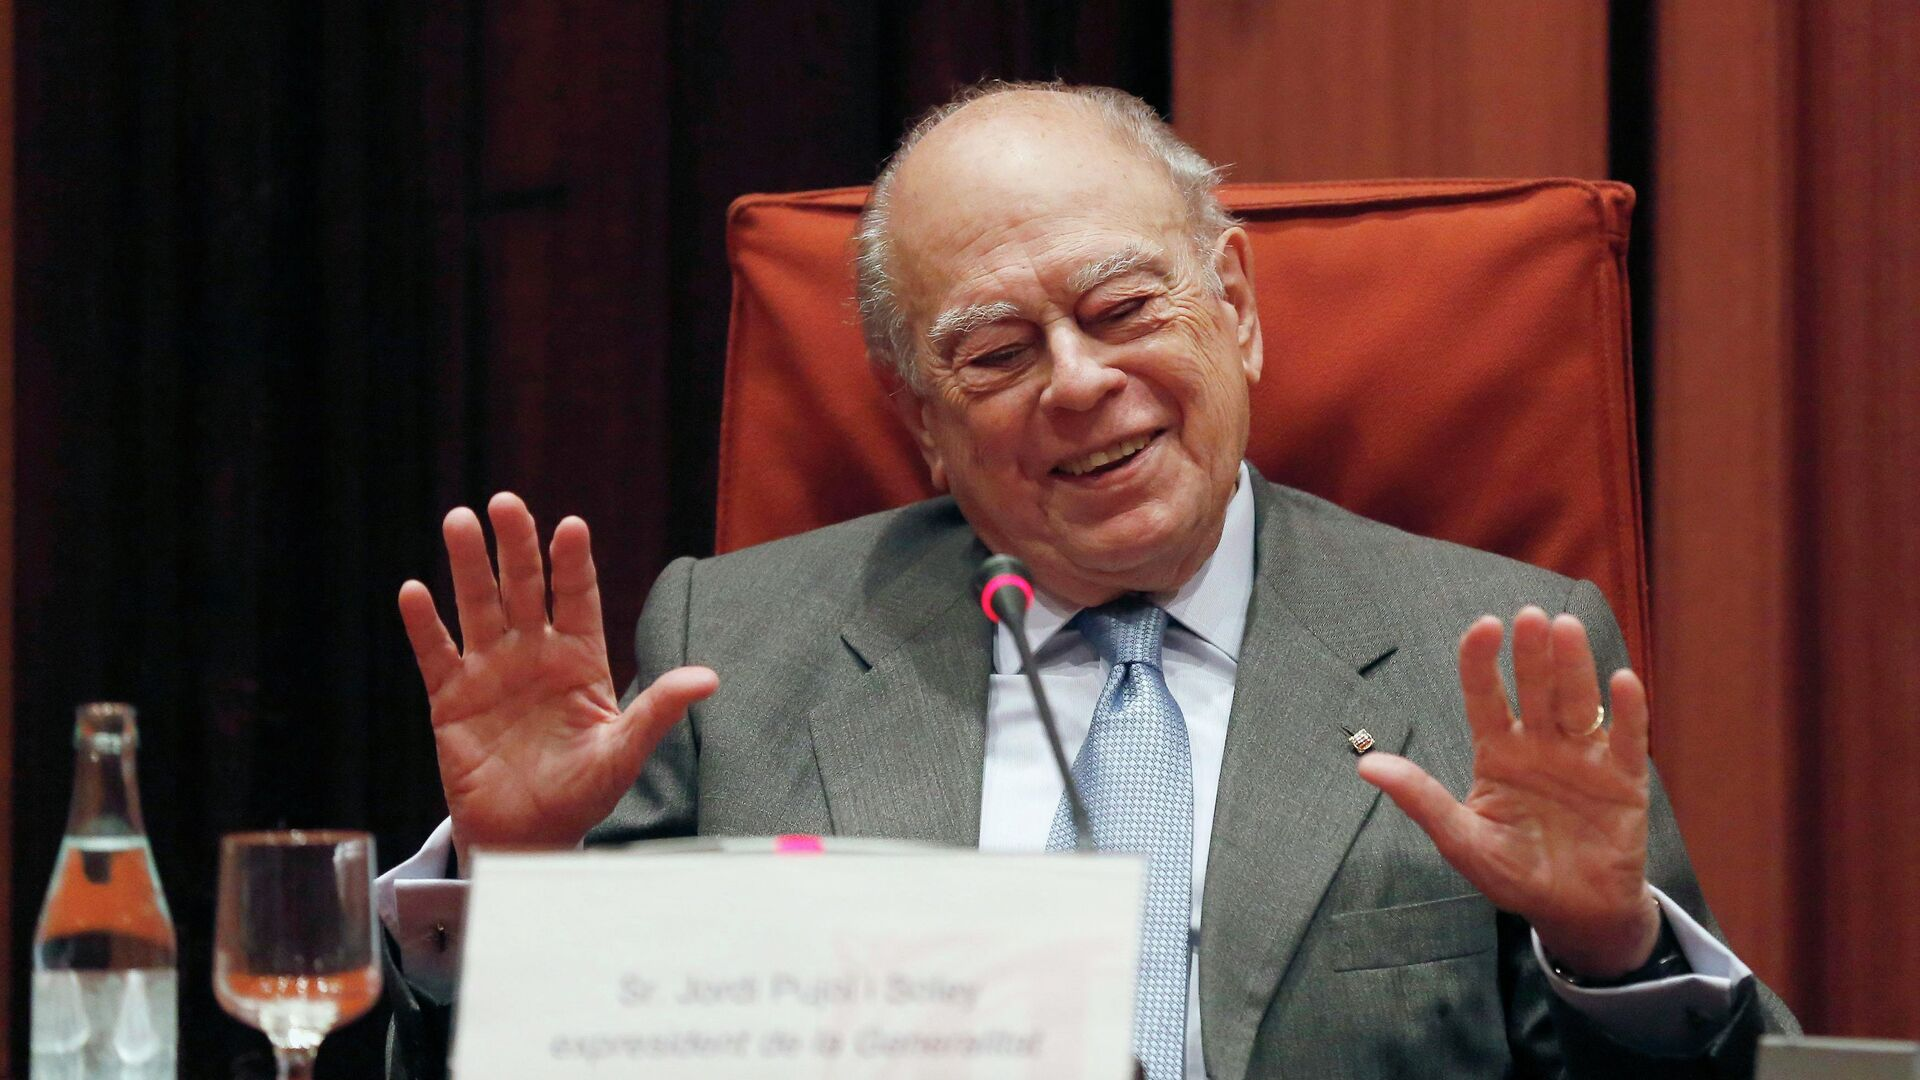 Catalonia's former president Jordi Pujol appears before a commission investigating tax evasion and money laundering at the Catalan Parliament, in Barcelona February 23, 2015 - Sputnik Mundo, 1920, 16.06.2021